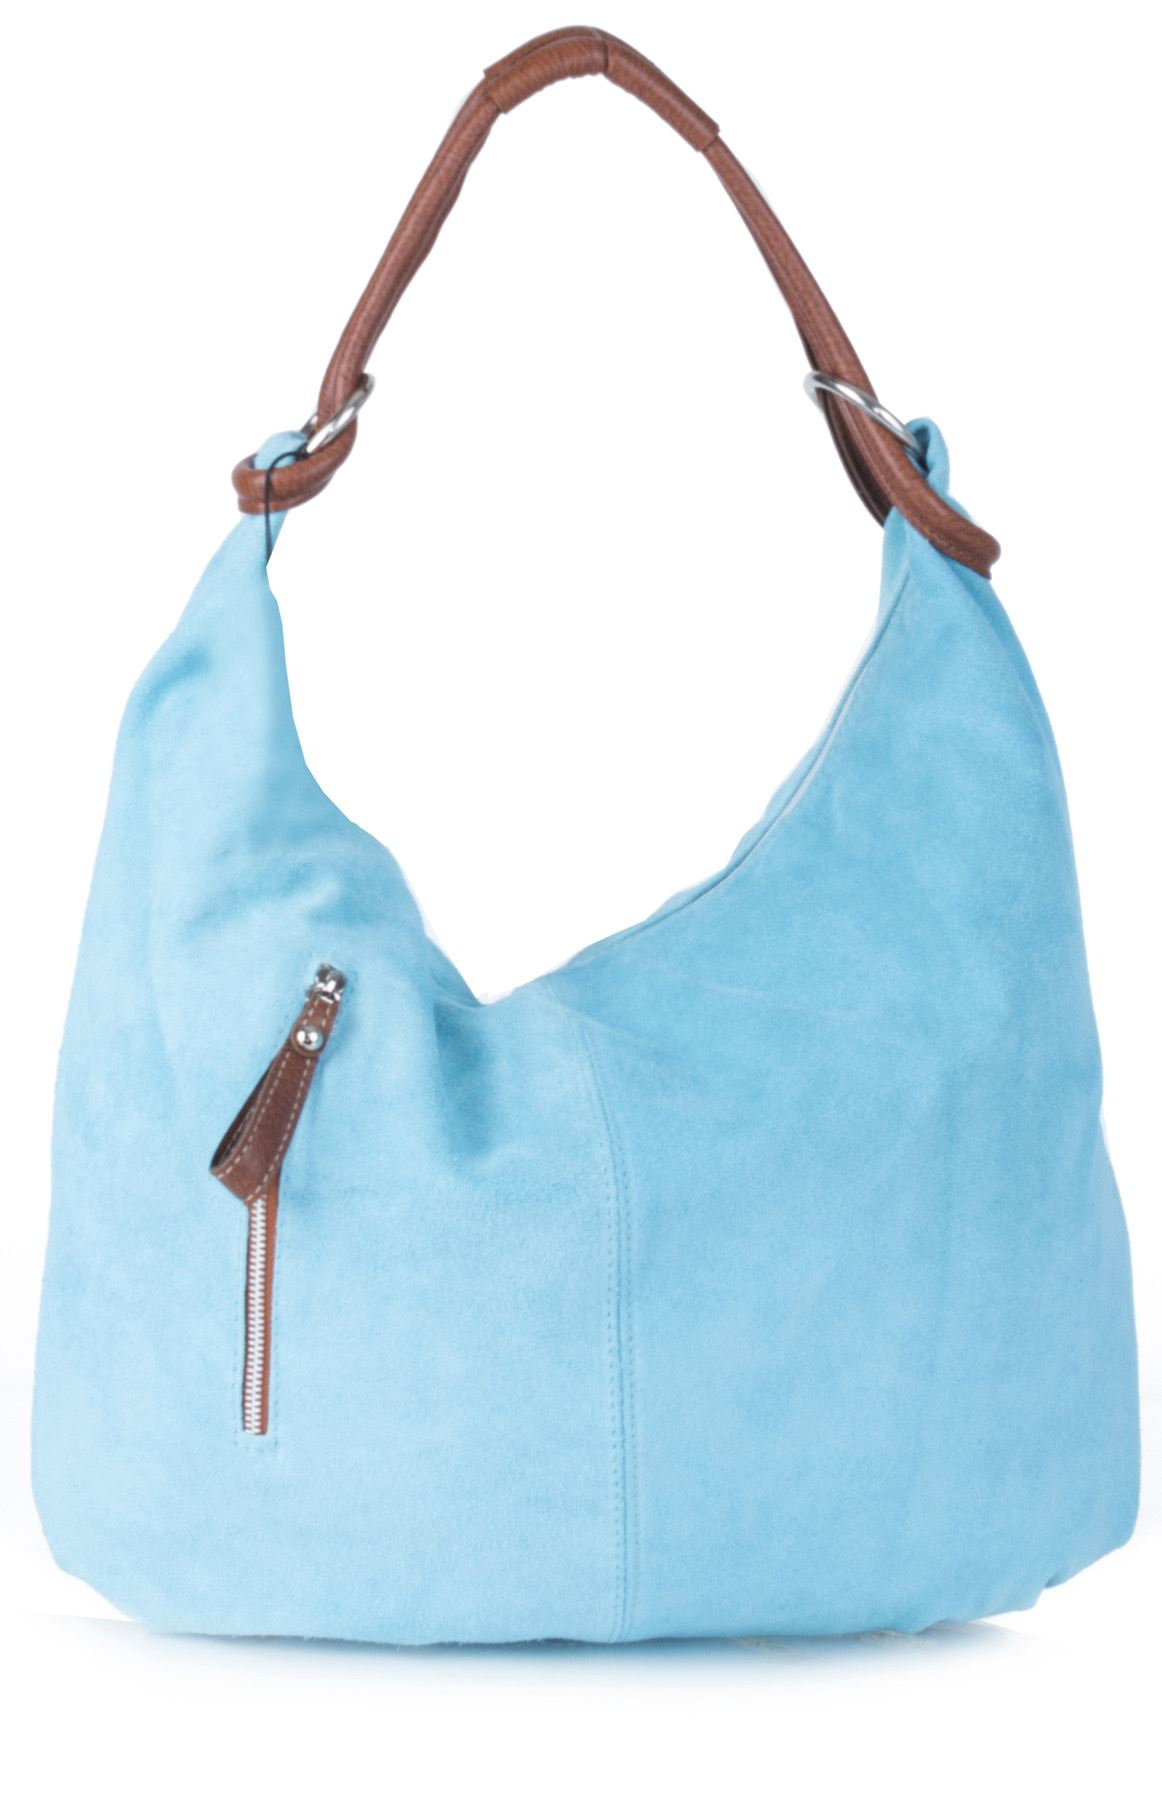 Vegan leather bucket style hobo bag with big chain strap, Detachable Women Ladies Bags Vintage Hobo Canvas Daily Purse Shoulder Tote Shopper Handbag. by CHIKENCALL. $ - $ $ 19 $ 22 59 Prime. FREE Shipping on eligible orders. Some sizes/colors are .